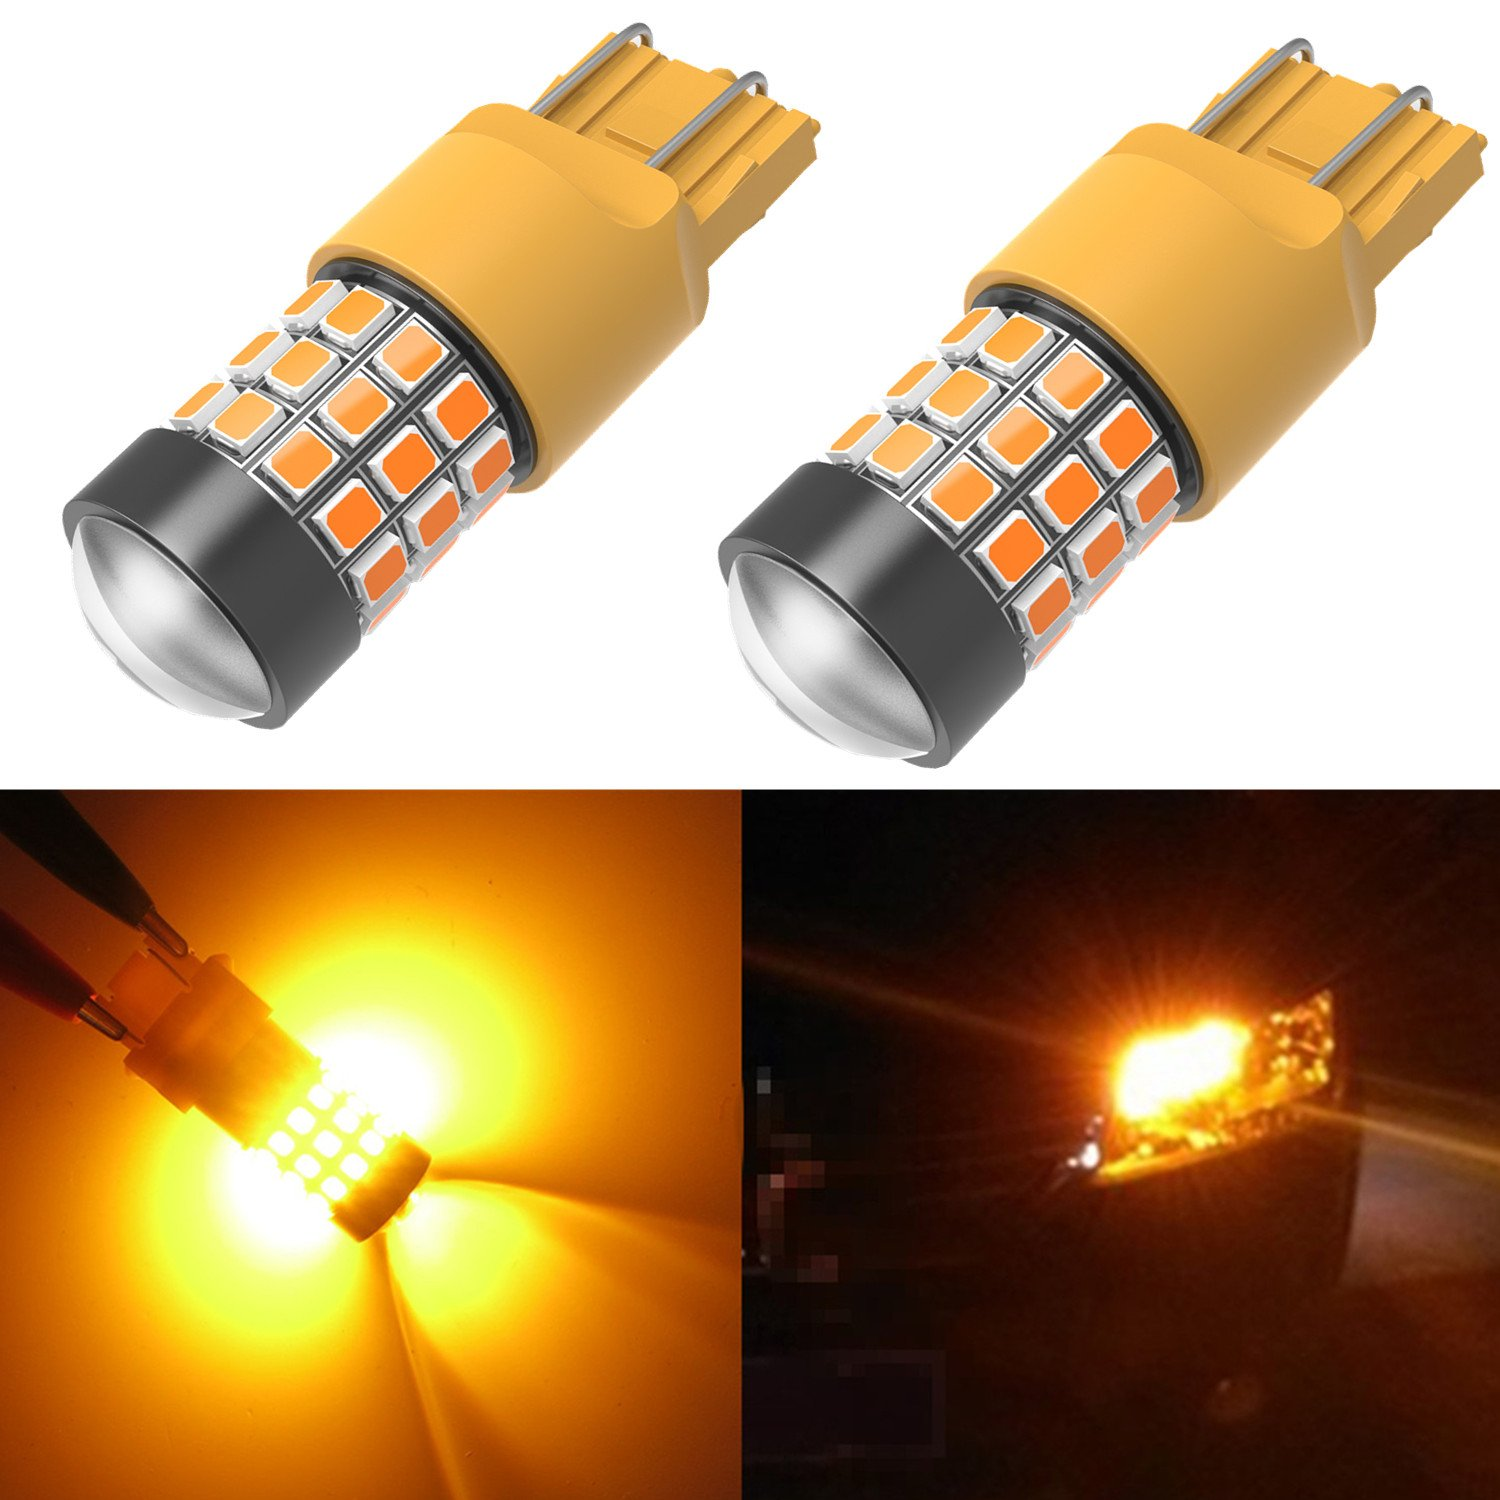 Alla Lighting 39-SMD 7443 7440 T20 High Power 2836 Chipsets Xtremely Super Bright Amber Yellow LED Bulbs for Side Marker Lights